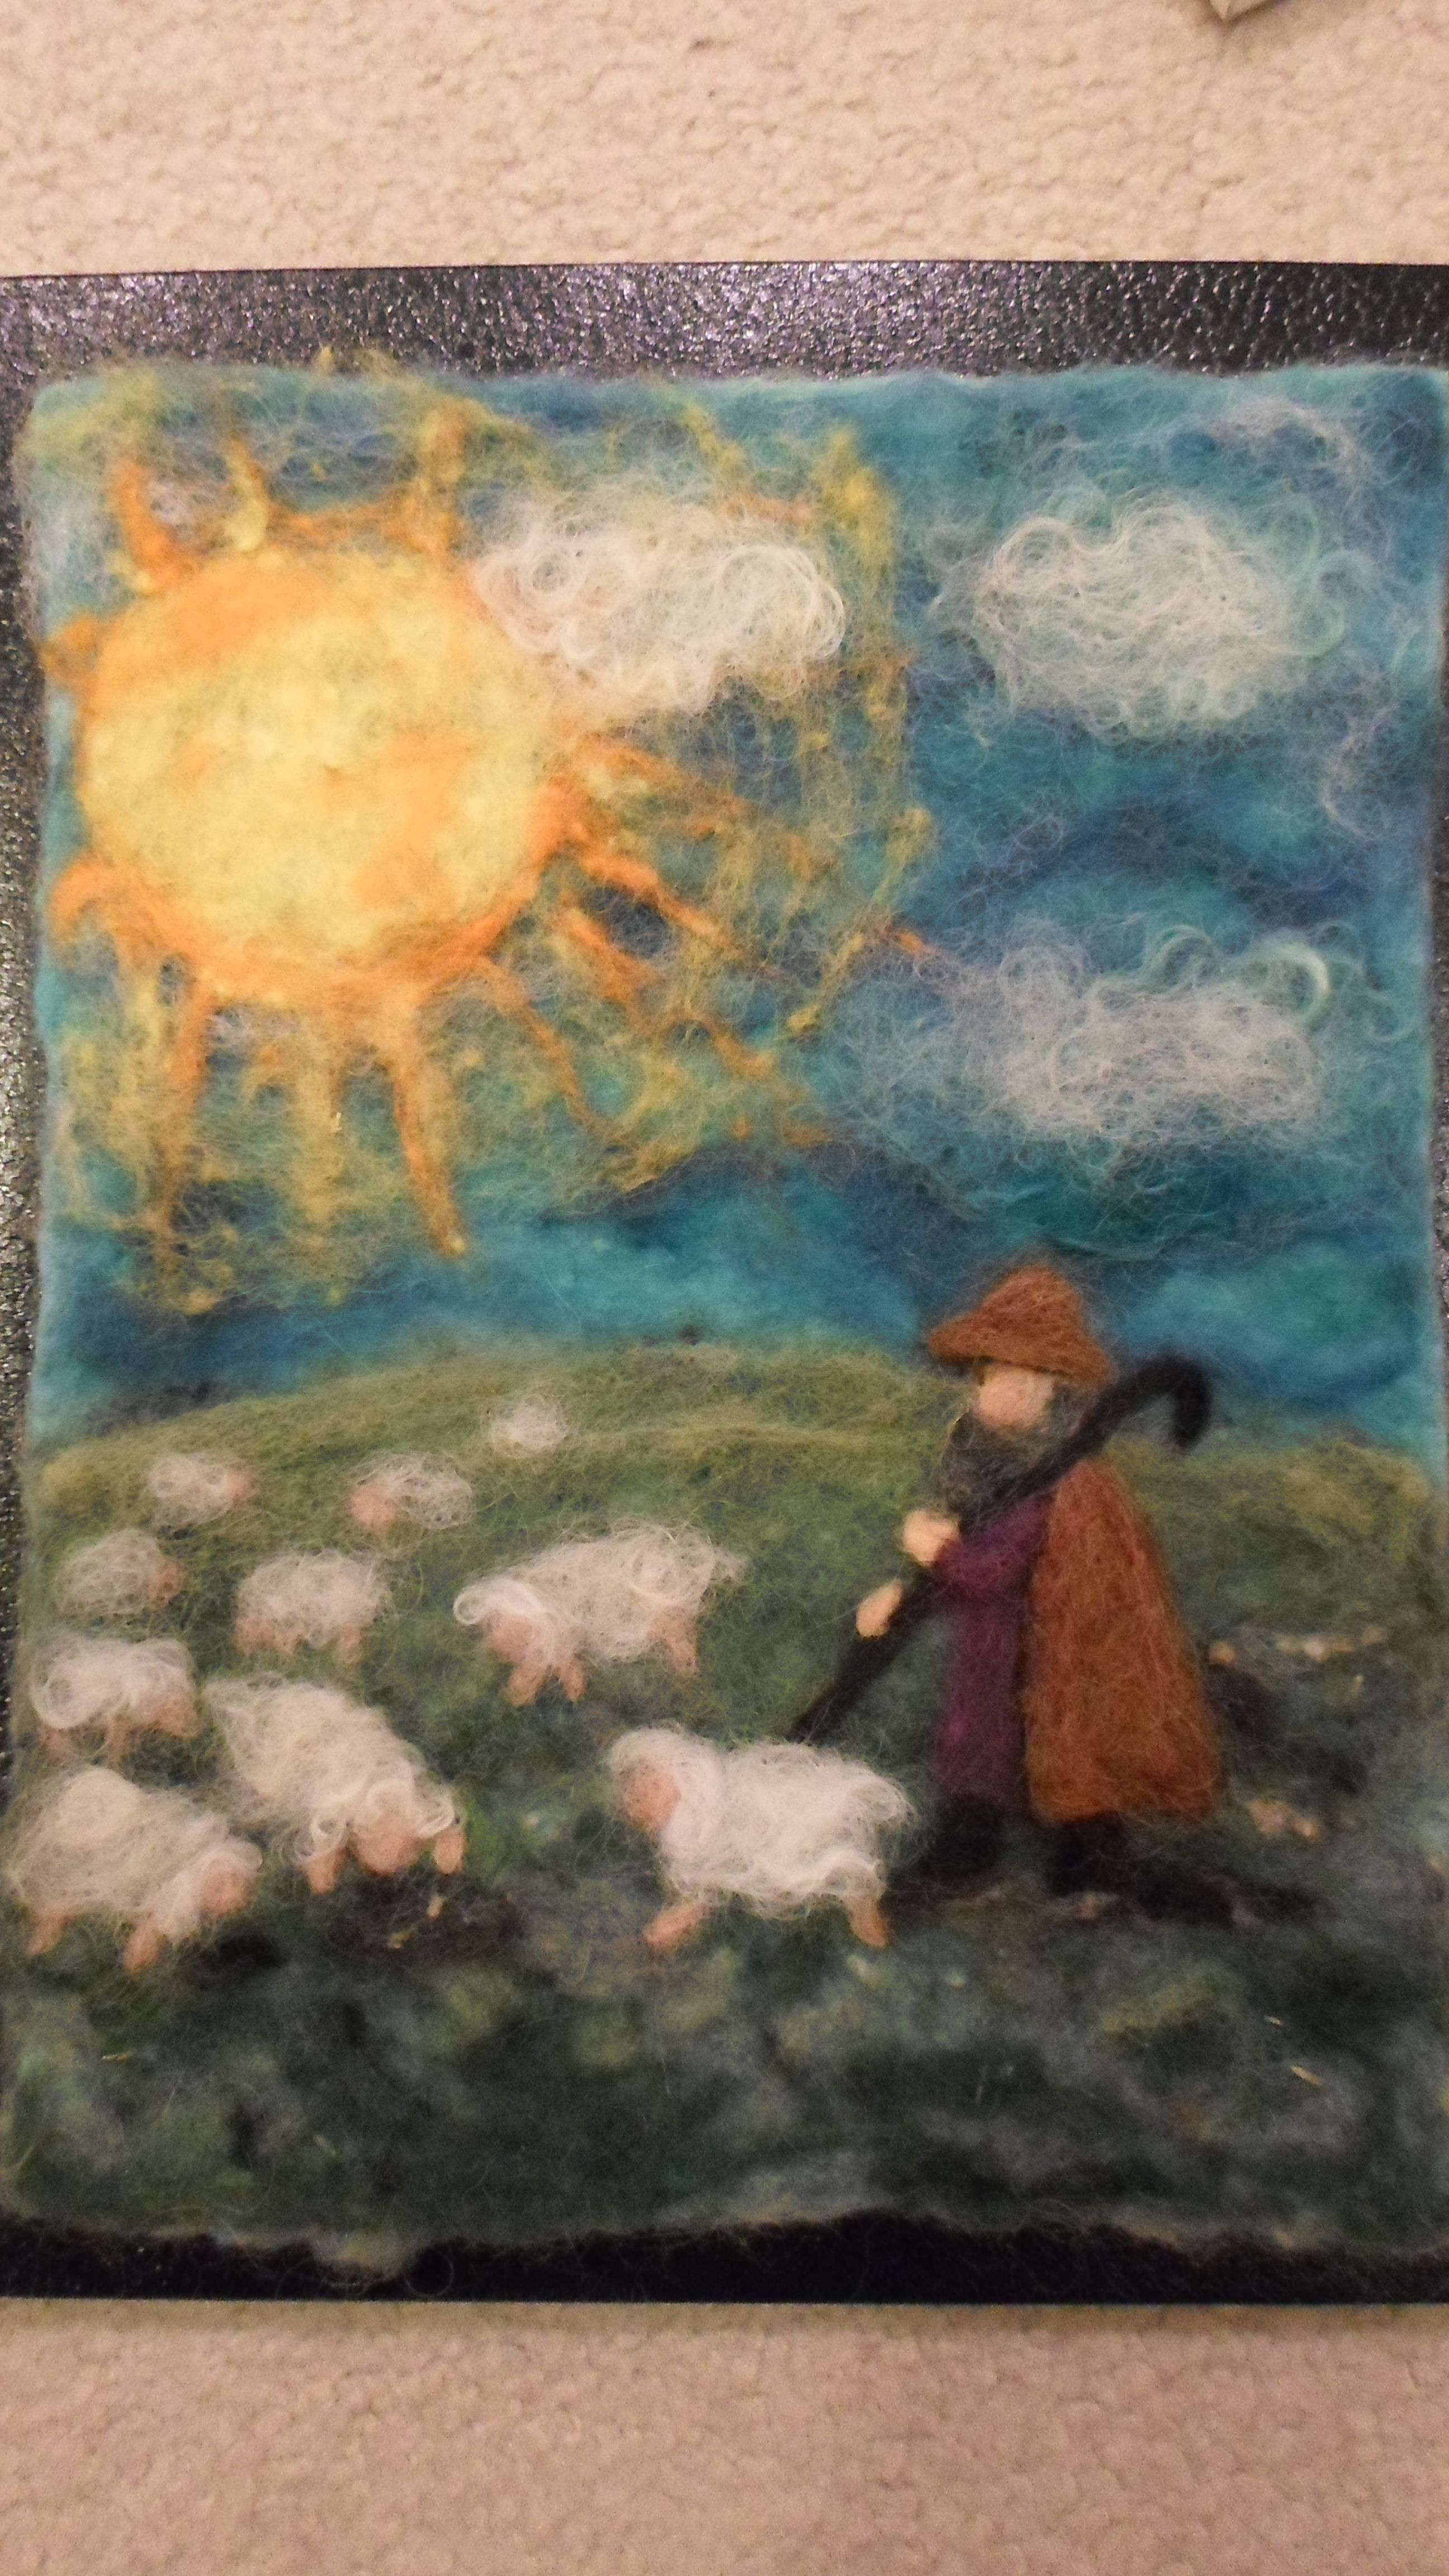 Wool Painting of a shepherd and his wooly flock.